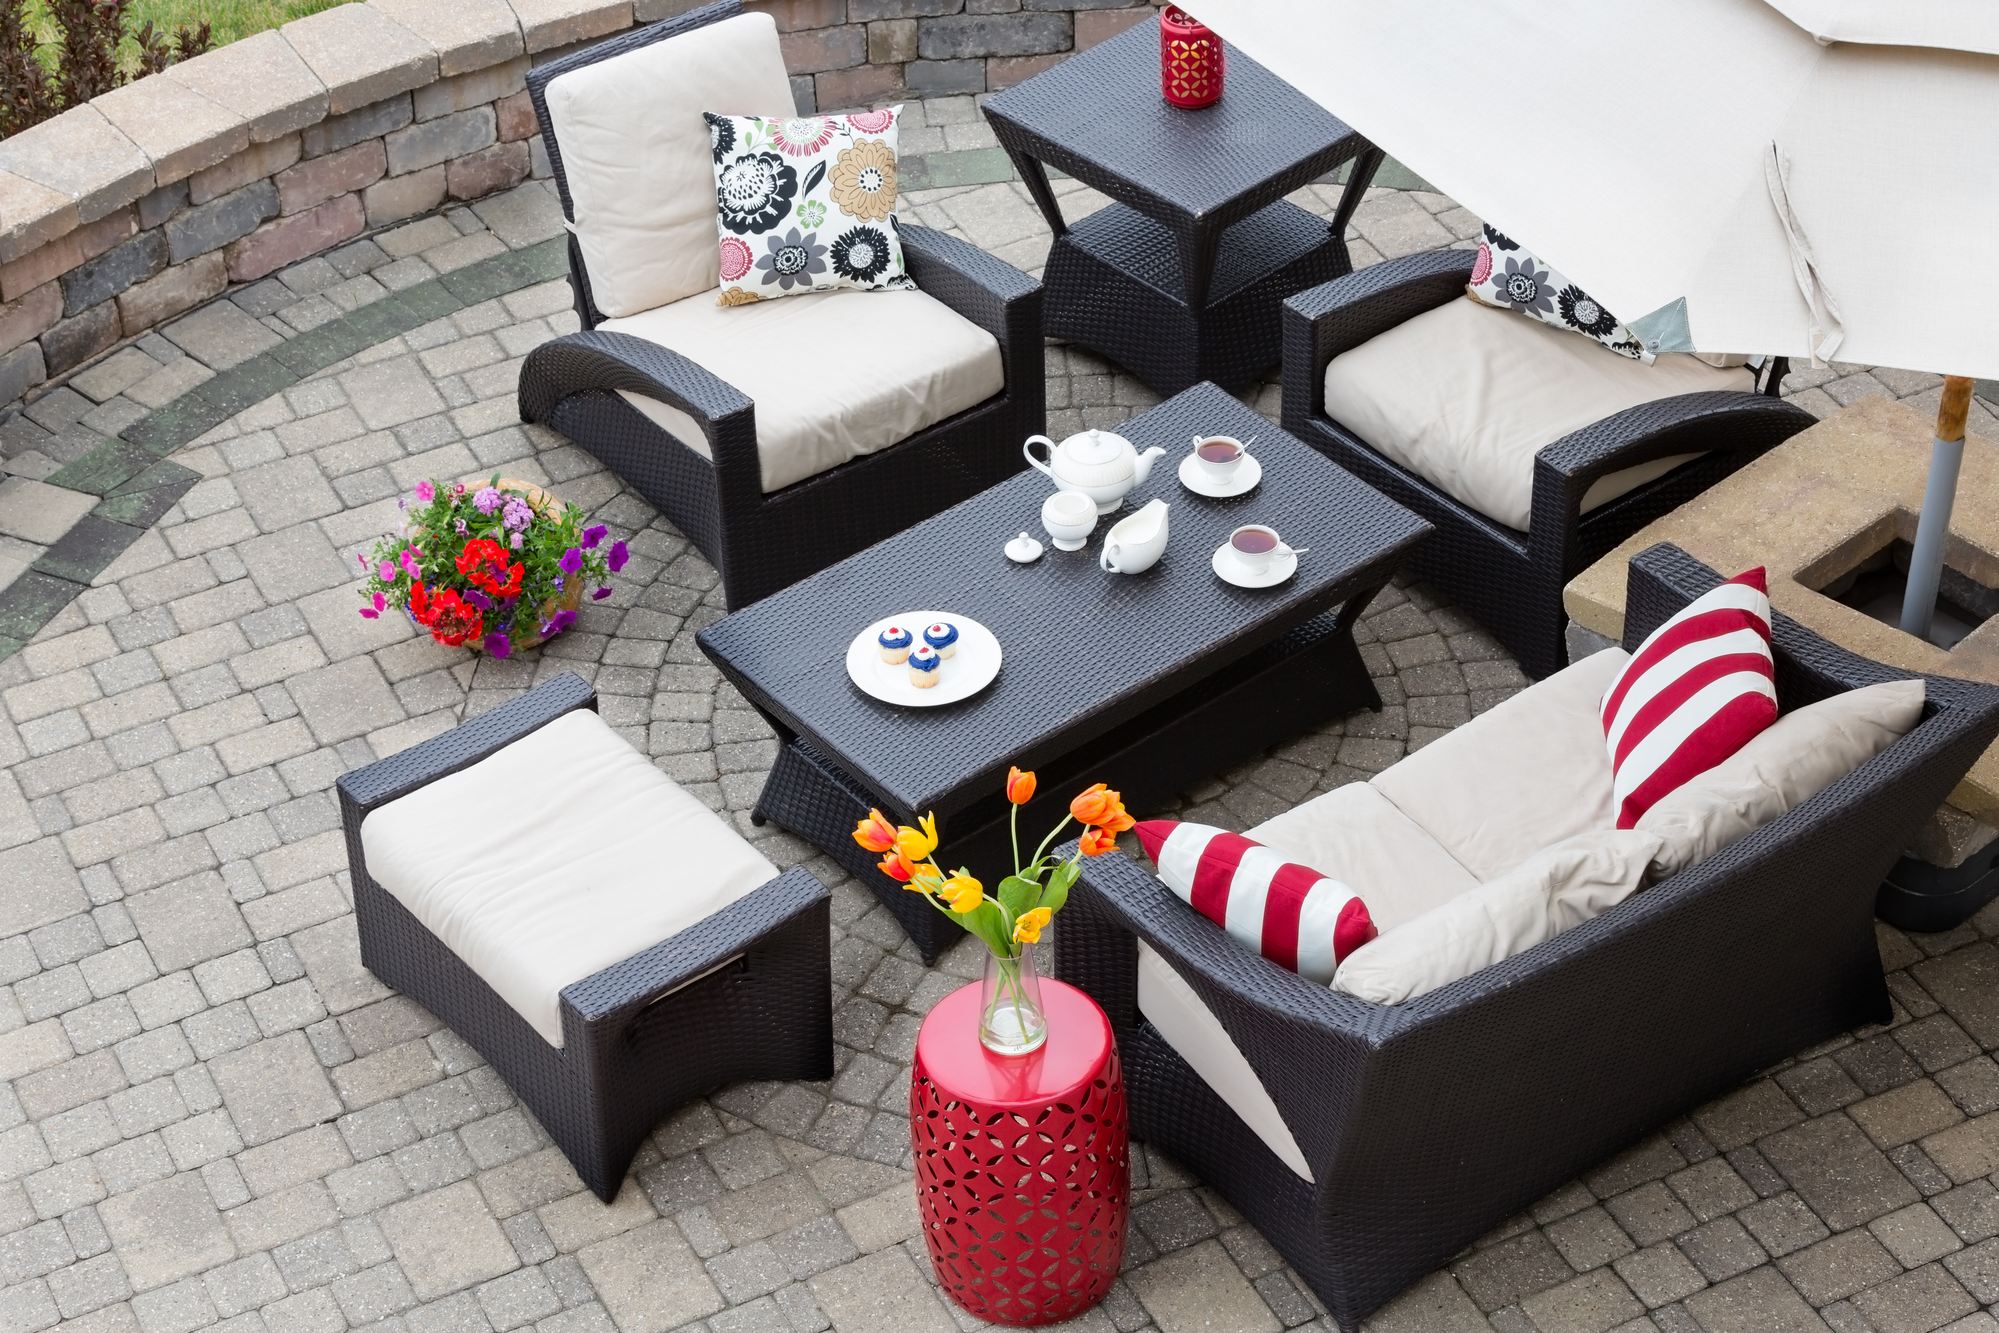 https figleafcushioncovers com replacement cushions vs slipcovers cozy patio furniture on luxury outdoor patio 2